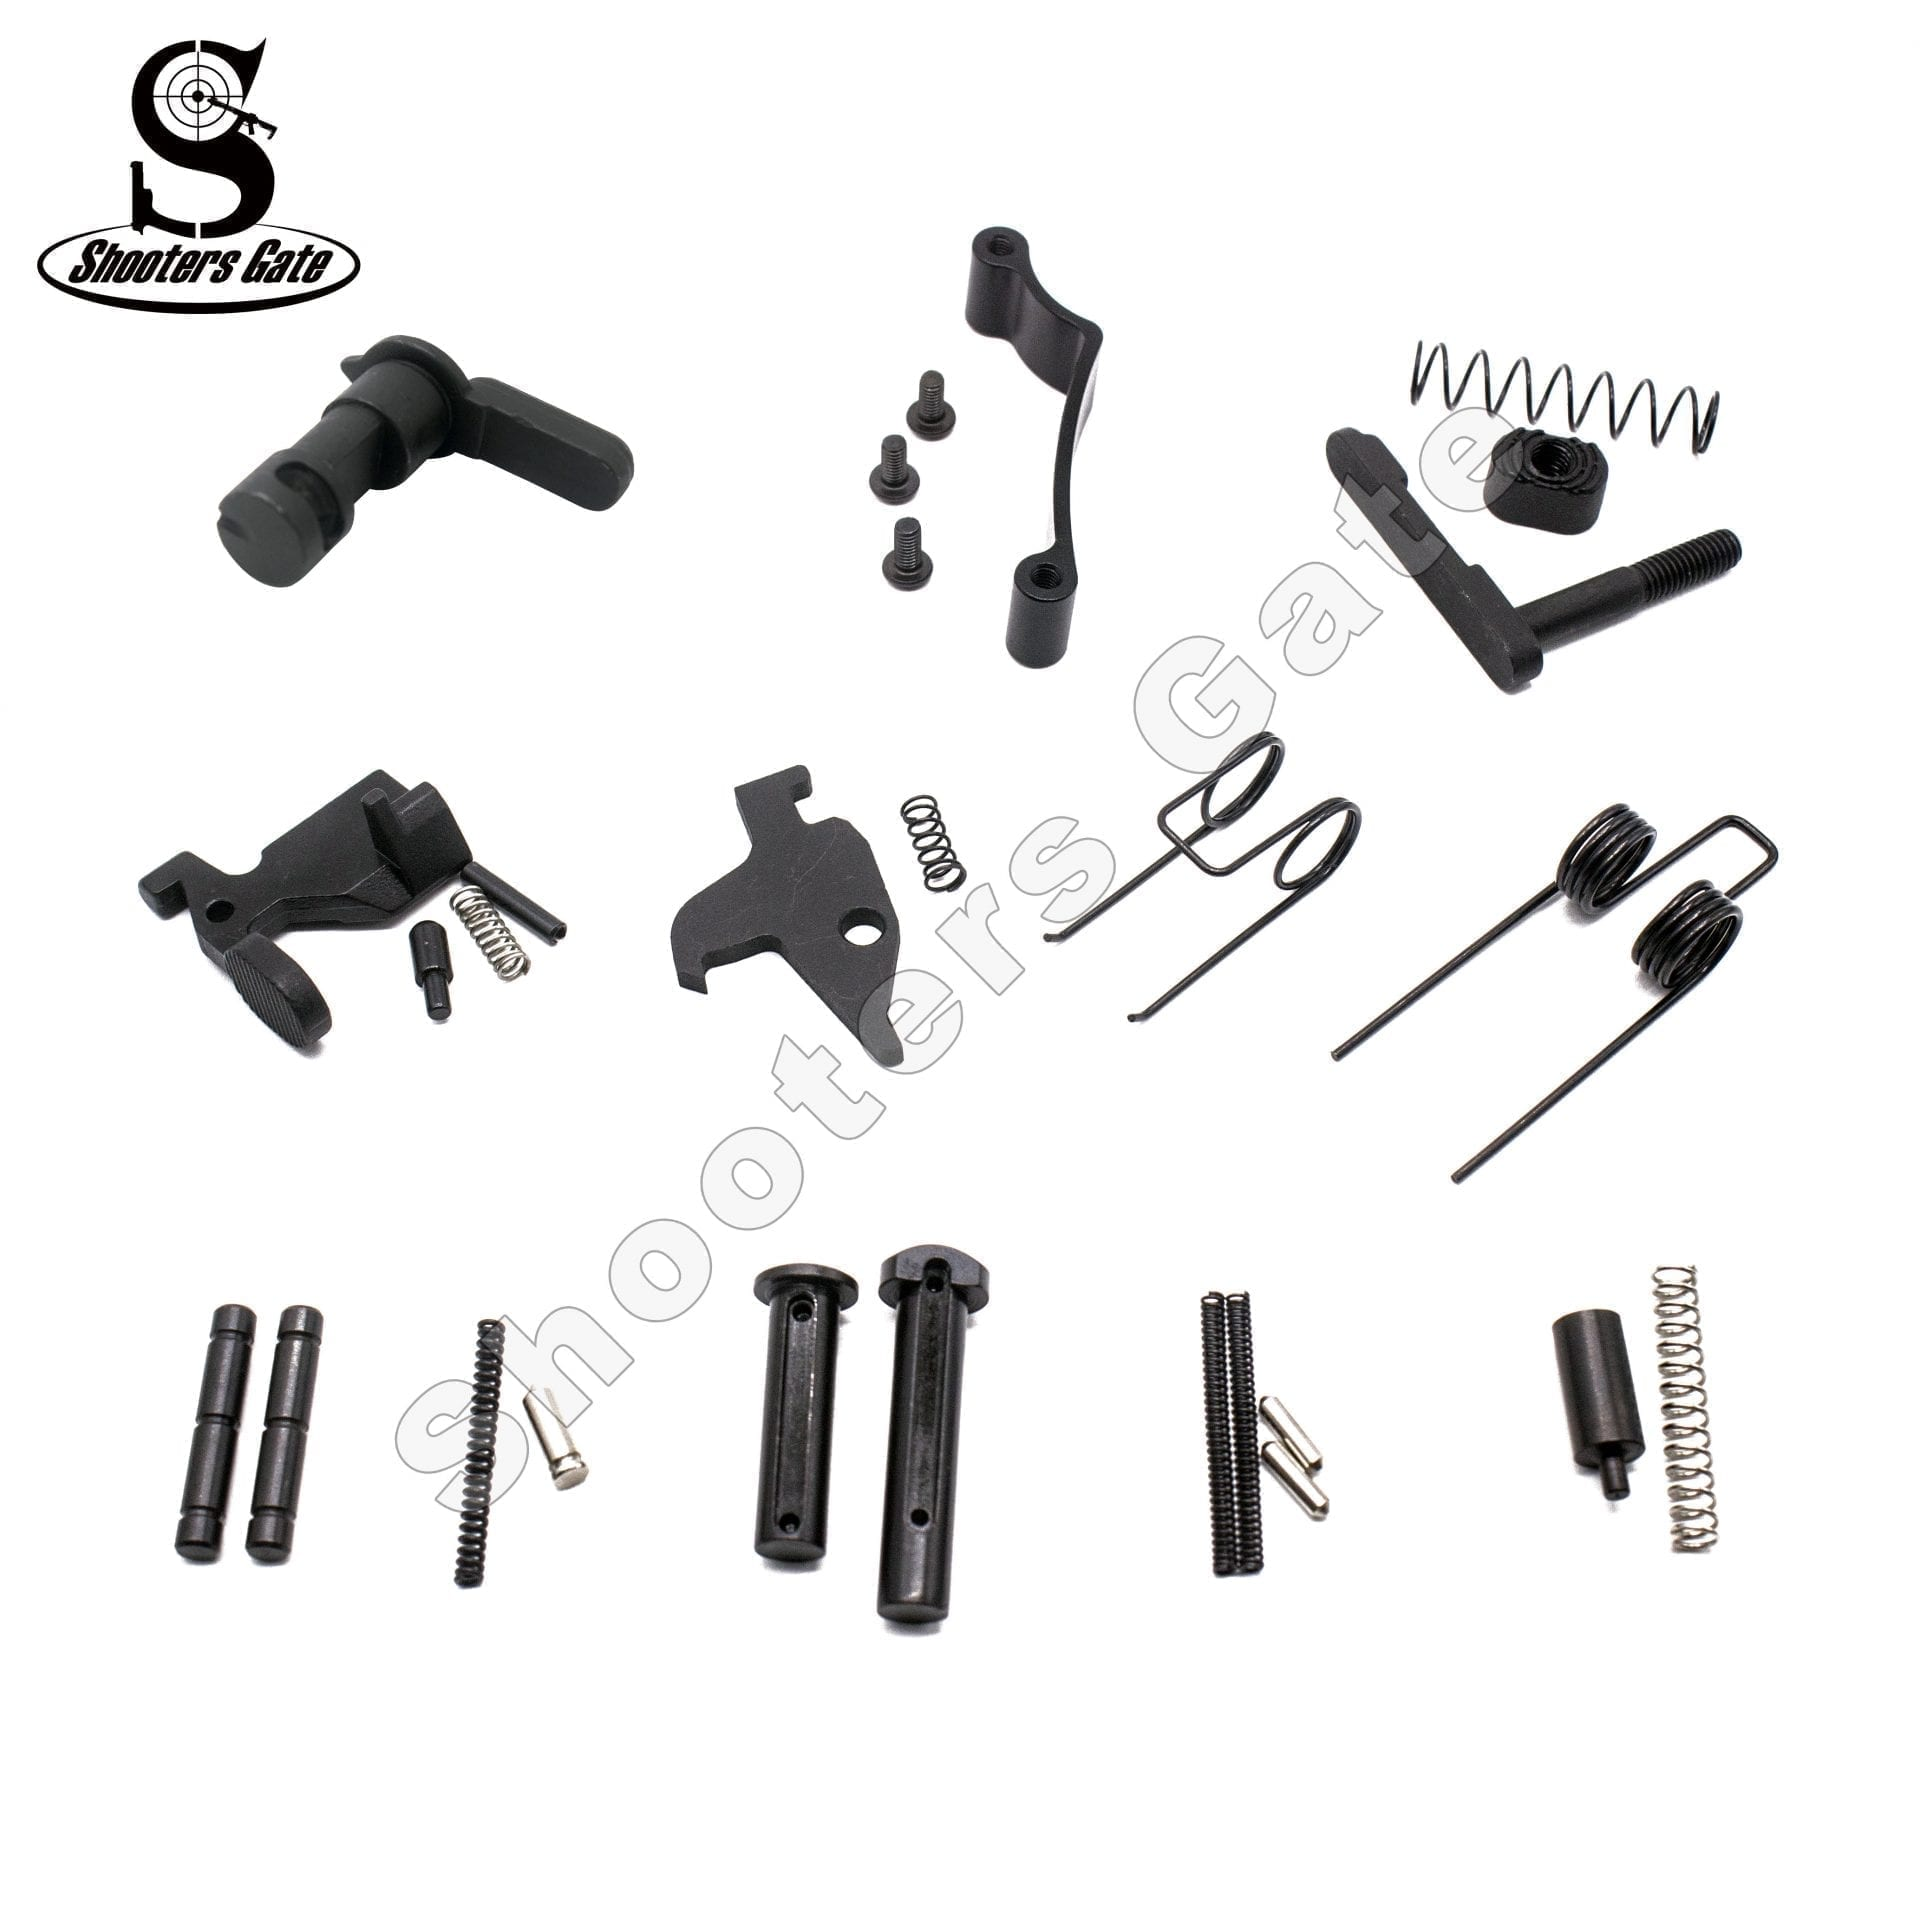 AR 15 33PCS LOWER PARTS KIT EXCEPT TRIGGER, HAMMER AND GRIP